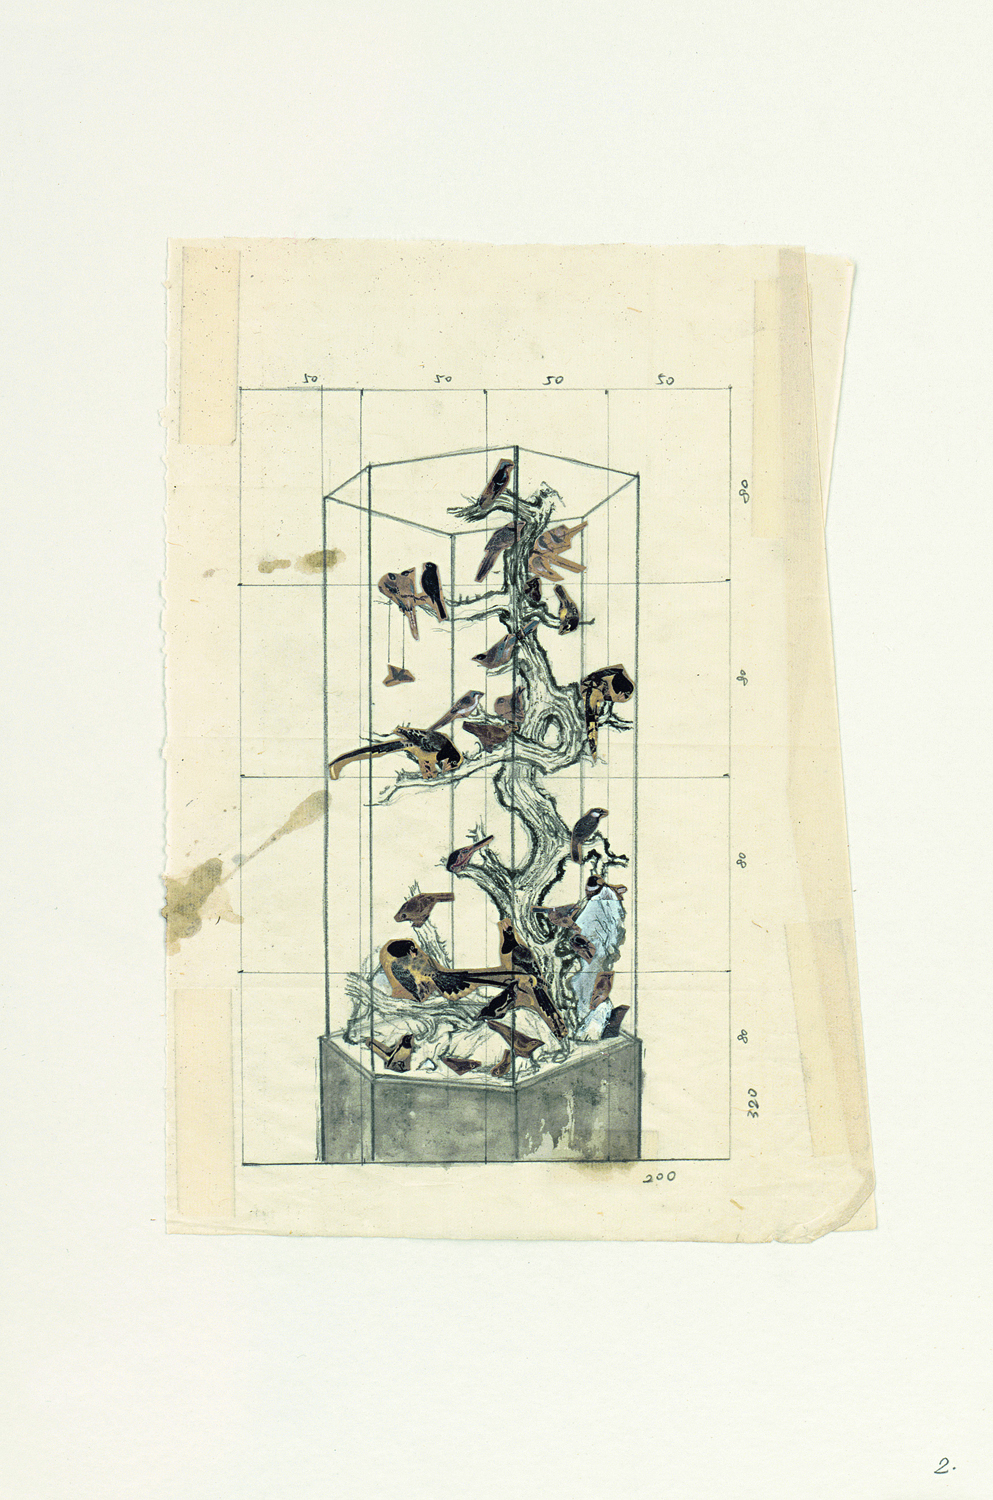 Ni Youyu 倪有鱼, Specimen Cabinet of Imperial Art Academy (sketch) 画院碑 (草稿), 2011, Mixed media on paper 纸本综合材料, 31 x 20.5 cm